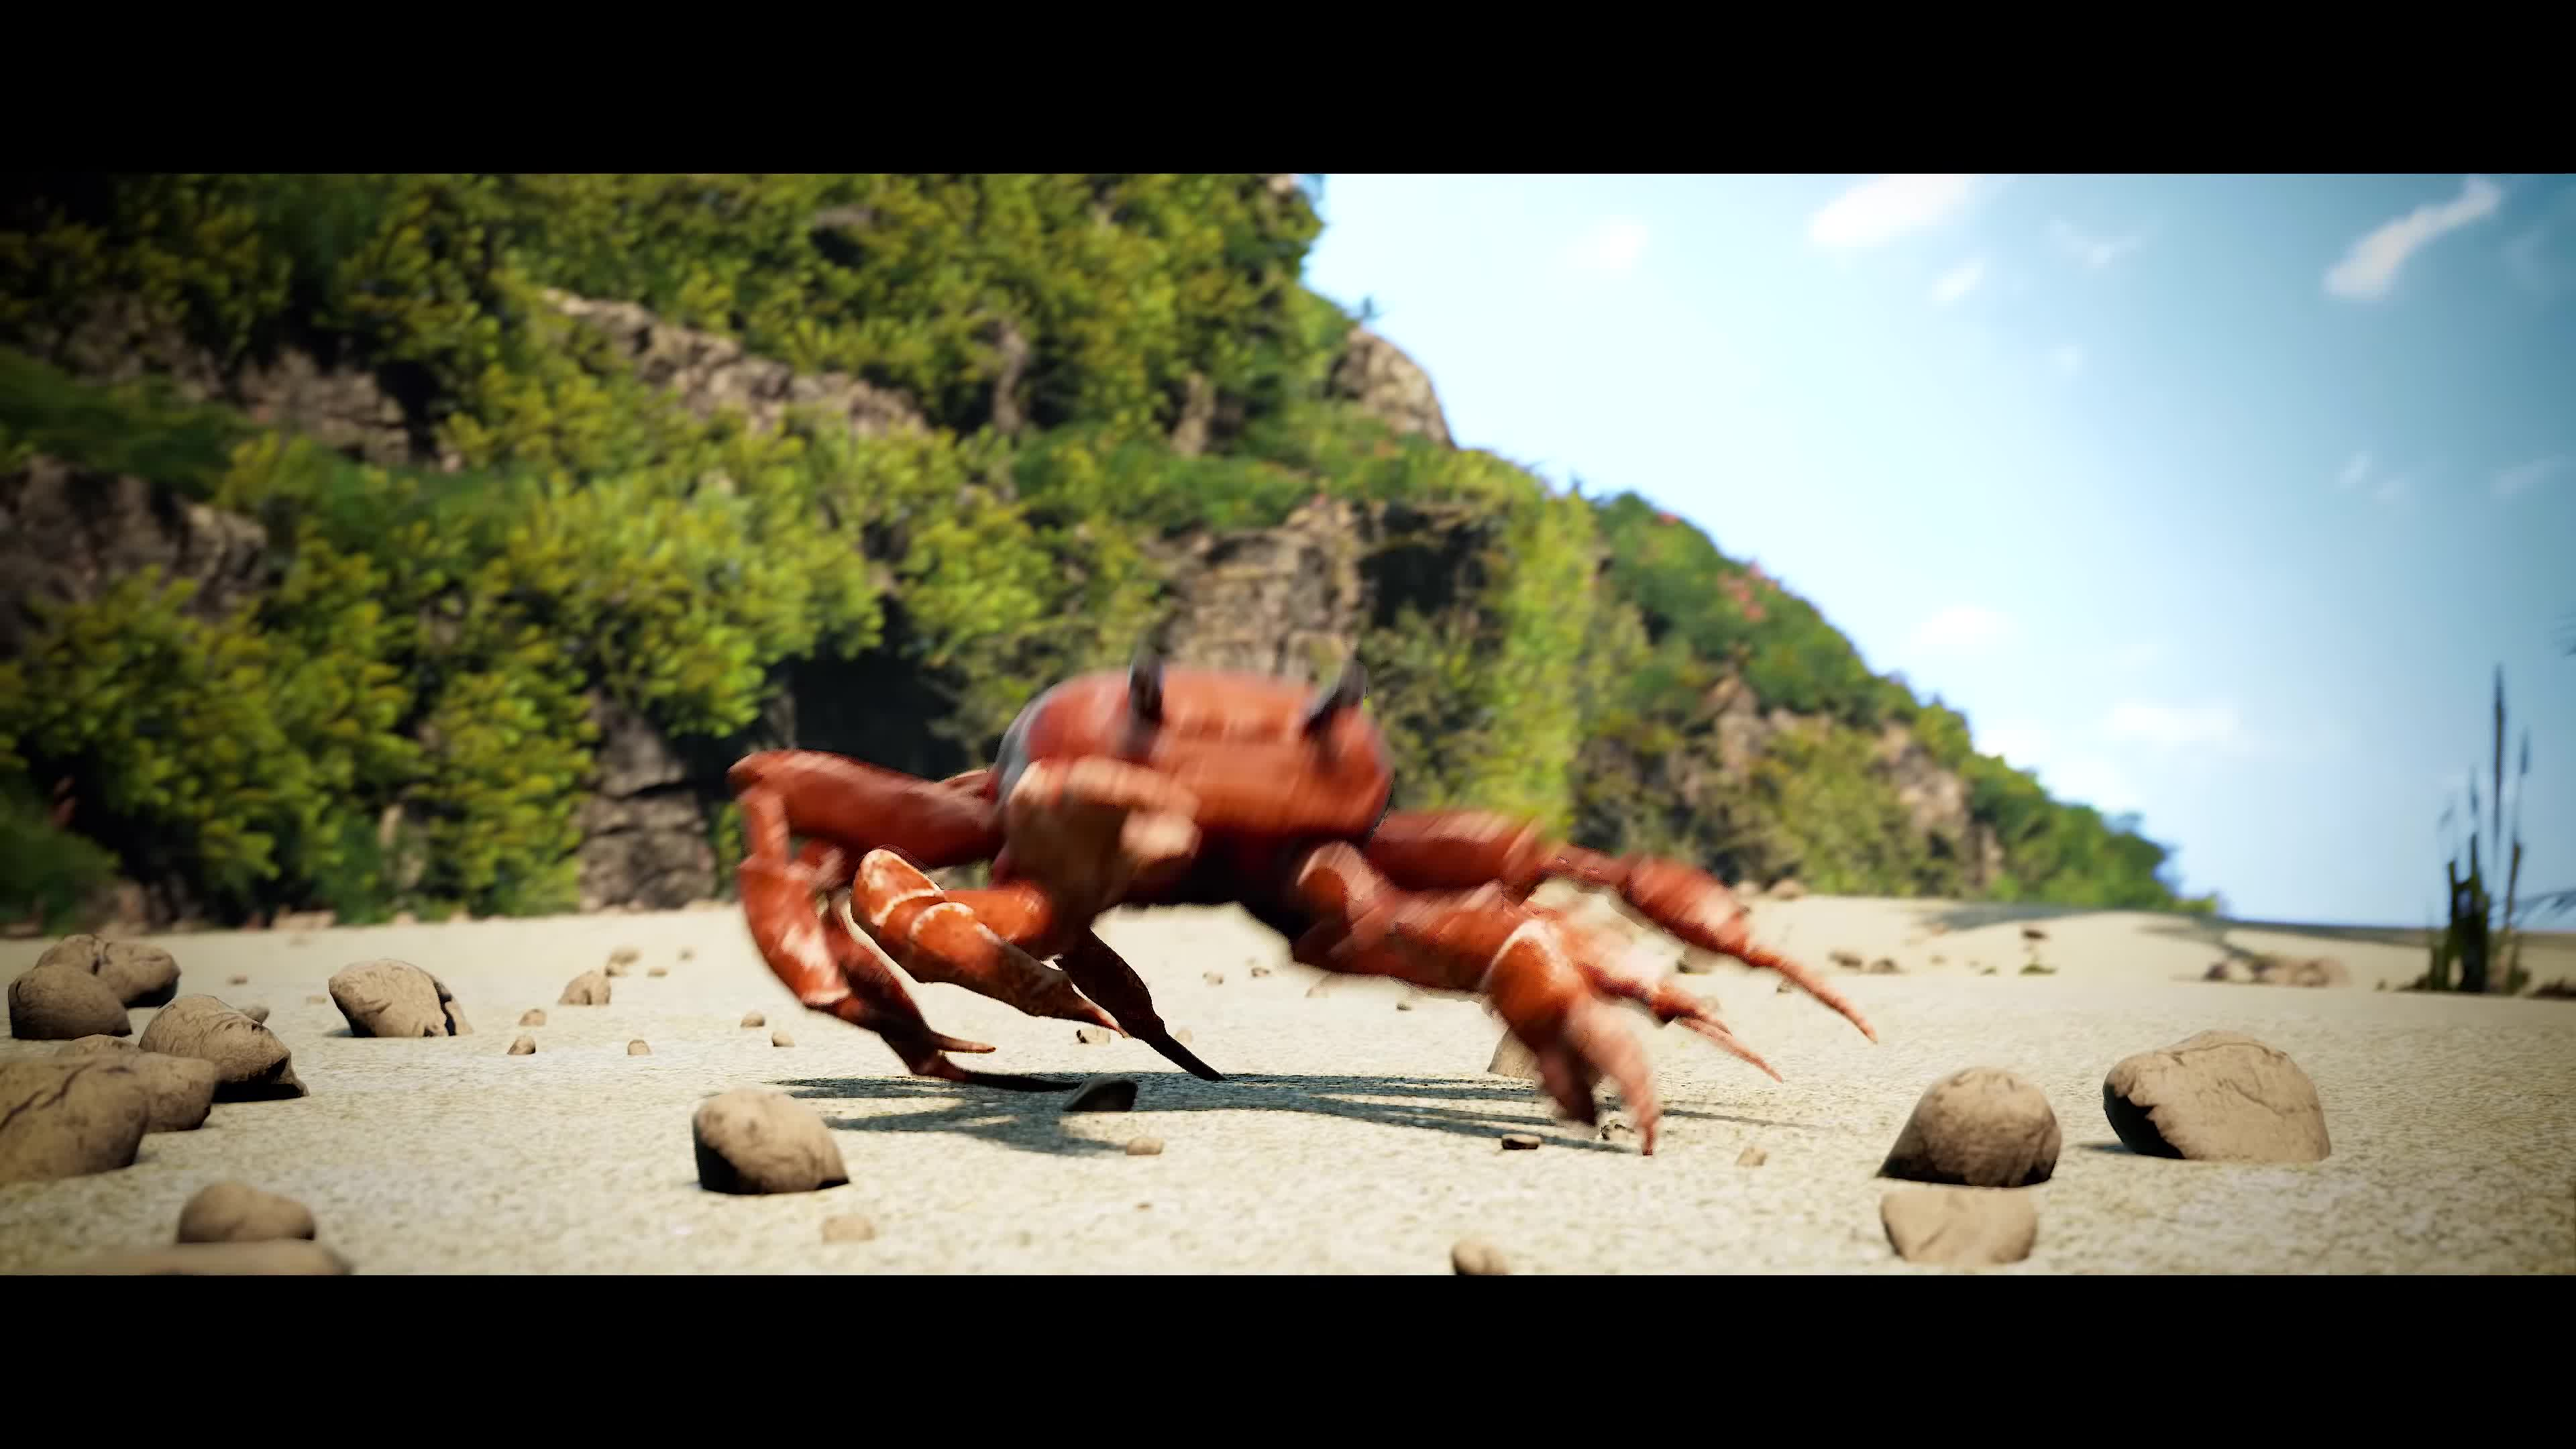 Crab Rave, Monstercat, crab, crab rave monstercat, crab rave noisestorm, monstercat crab rave, monstercat instinct, noisestorm, noisestorm crab rave, noisestorm monstercat, Noisestorm - Crab Rave [Monstercat Release] GIFs